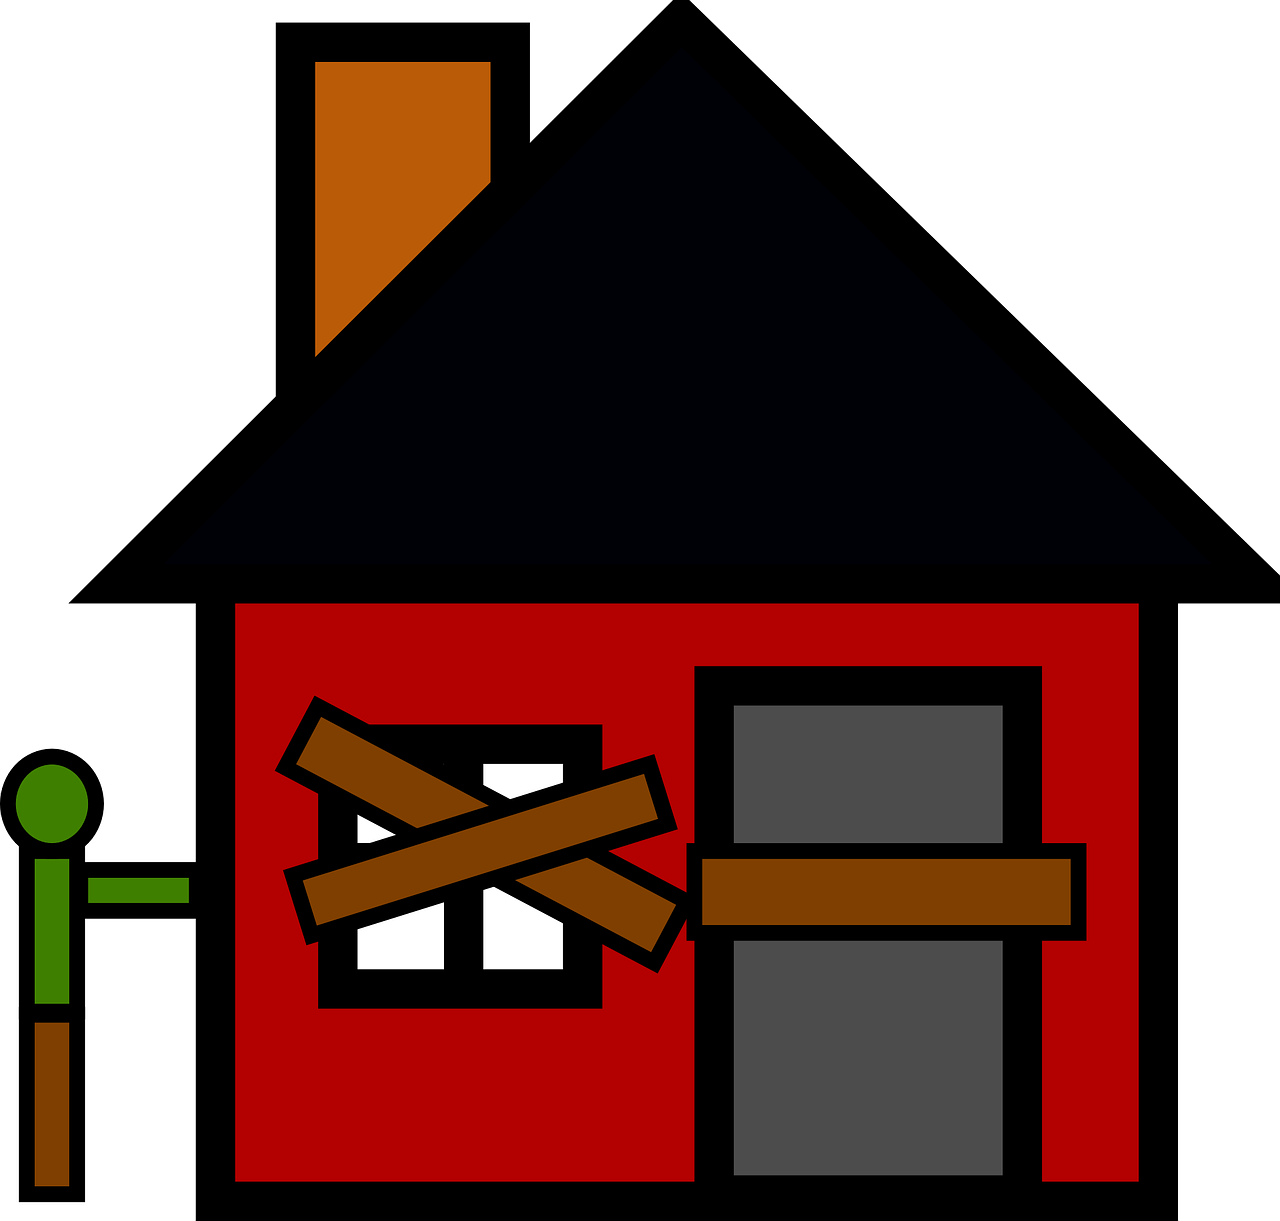 Recovery has many waiting. Clipart home economic